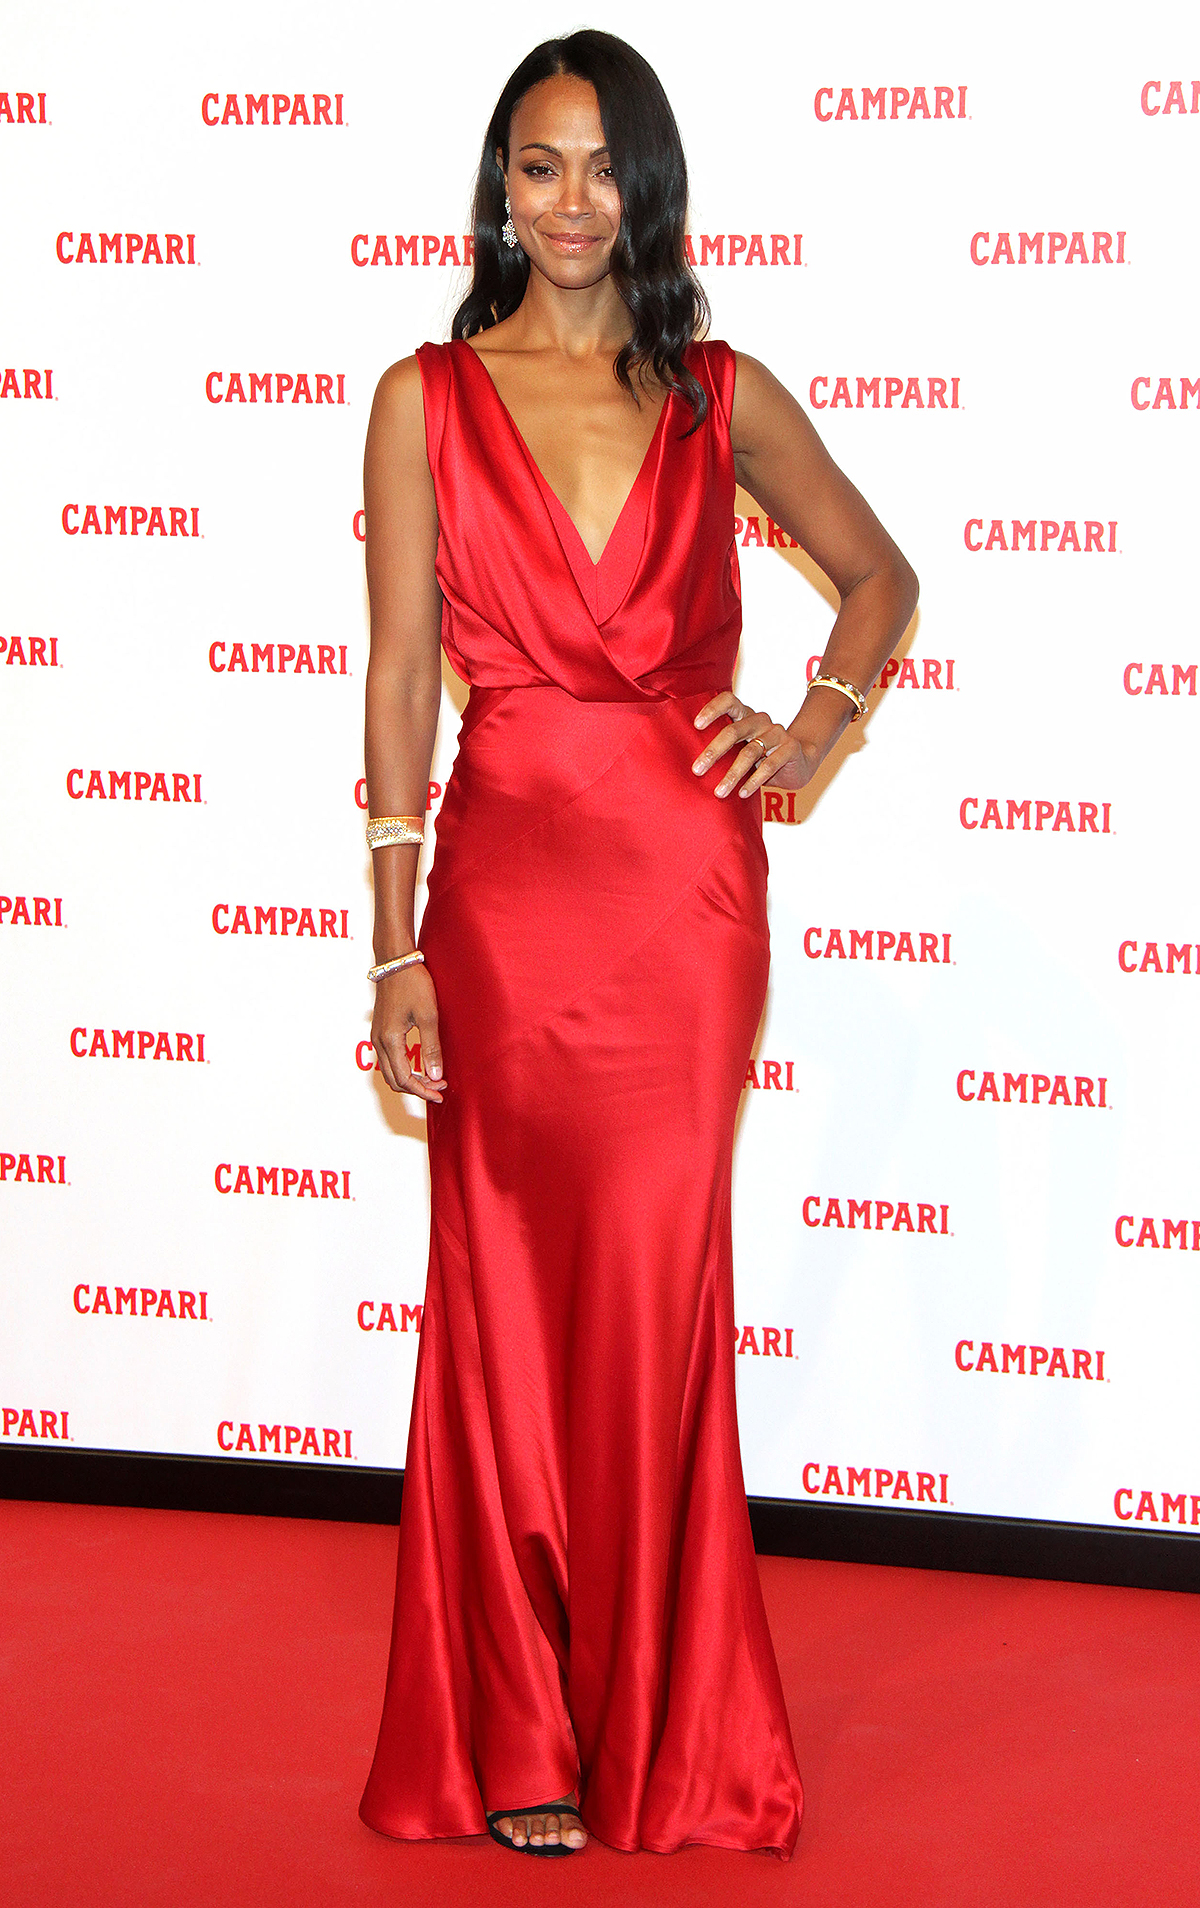 Campari Red Diaries 'The Legend of Red Hand' film premiere, Milan, Italy - 30 Jan 2018